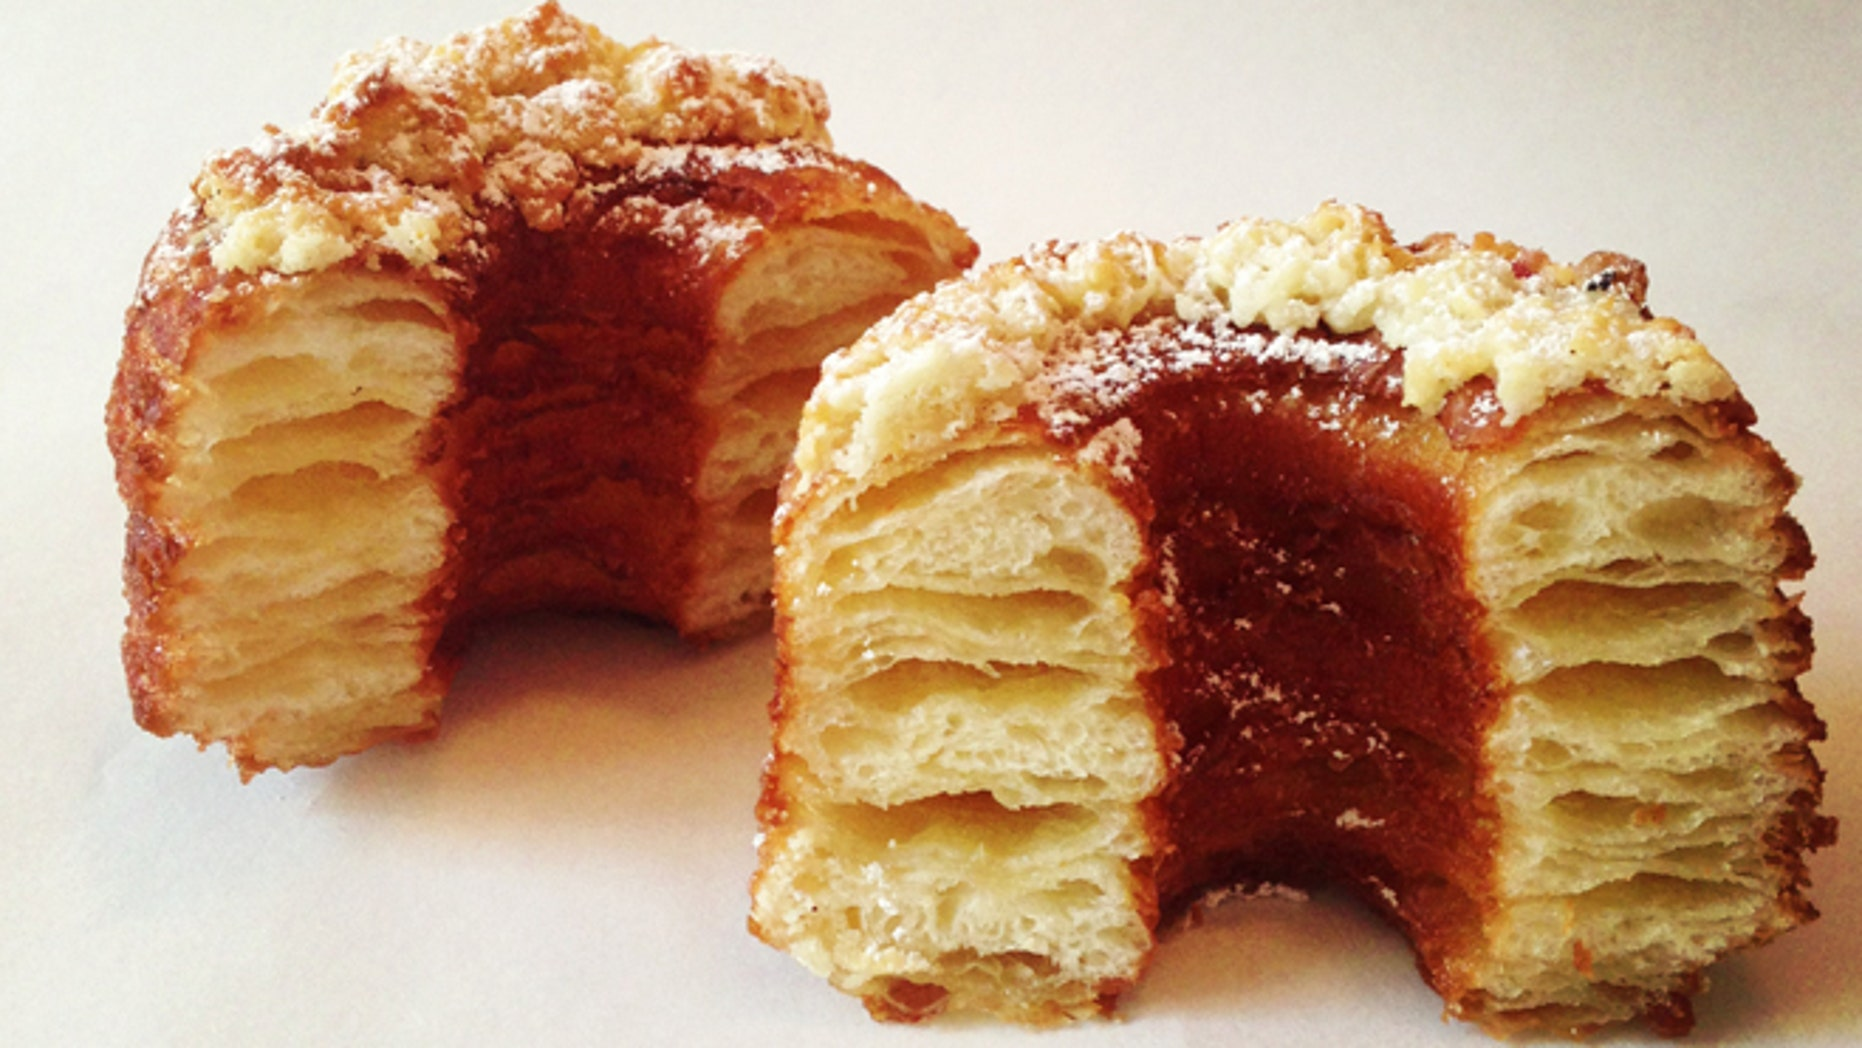 The original Cronut is flavored with crystallized sugar, Tahitian vanilla-flavored ganache and finished off with a rose glaze.